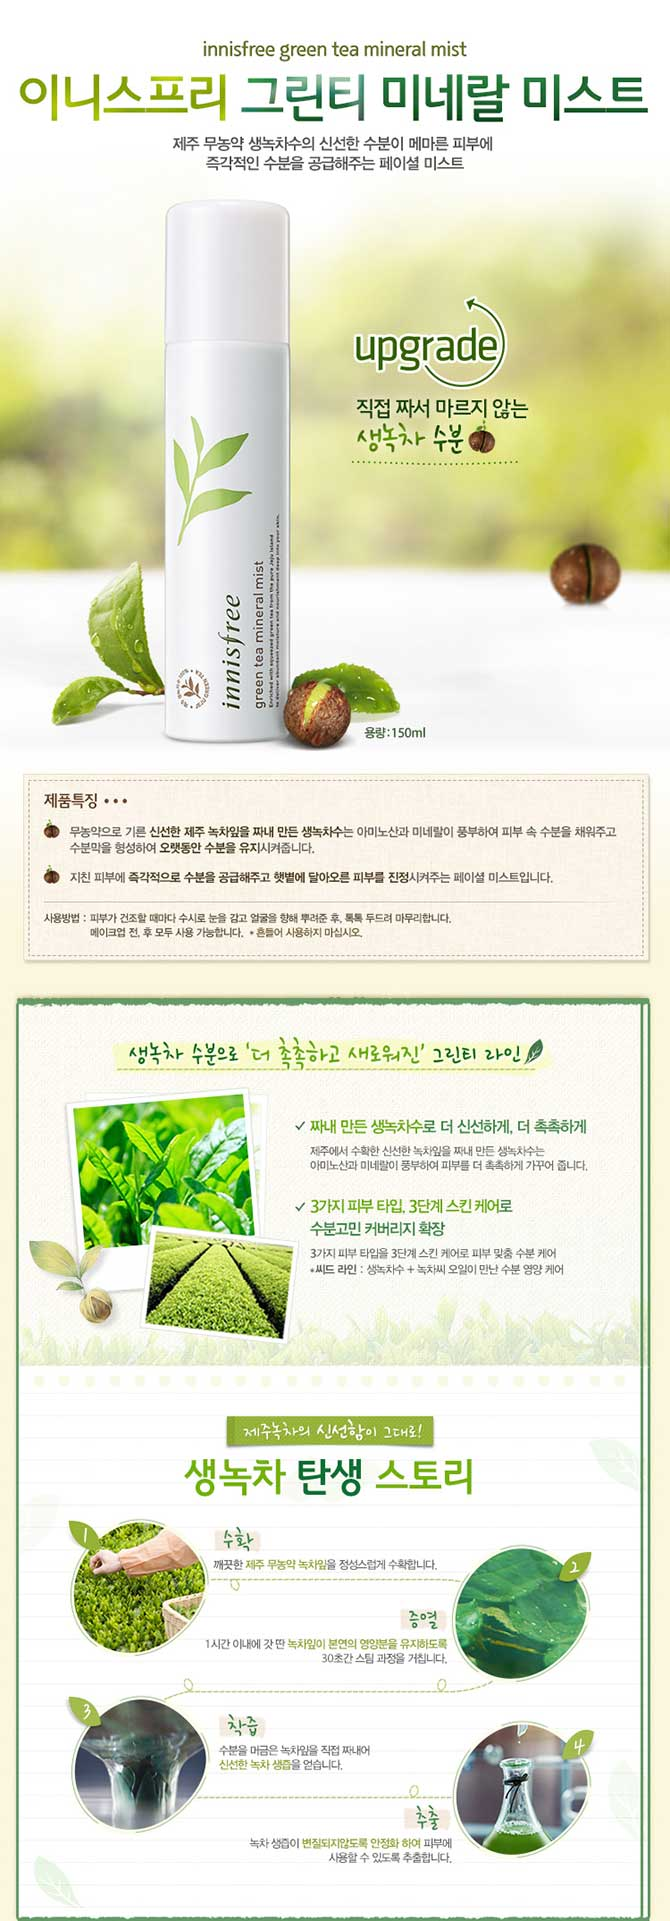 Xit-khoang-tra-xanh-INNISFREE-Green-Tea-Mineral-Mist-120ml-1